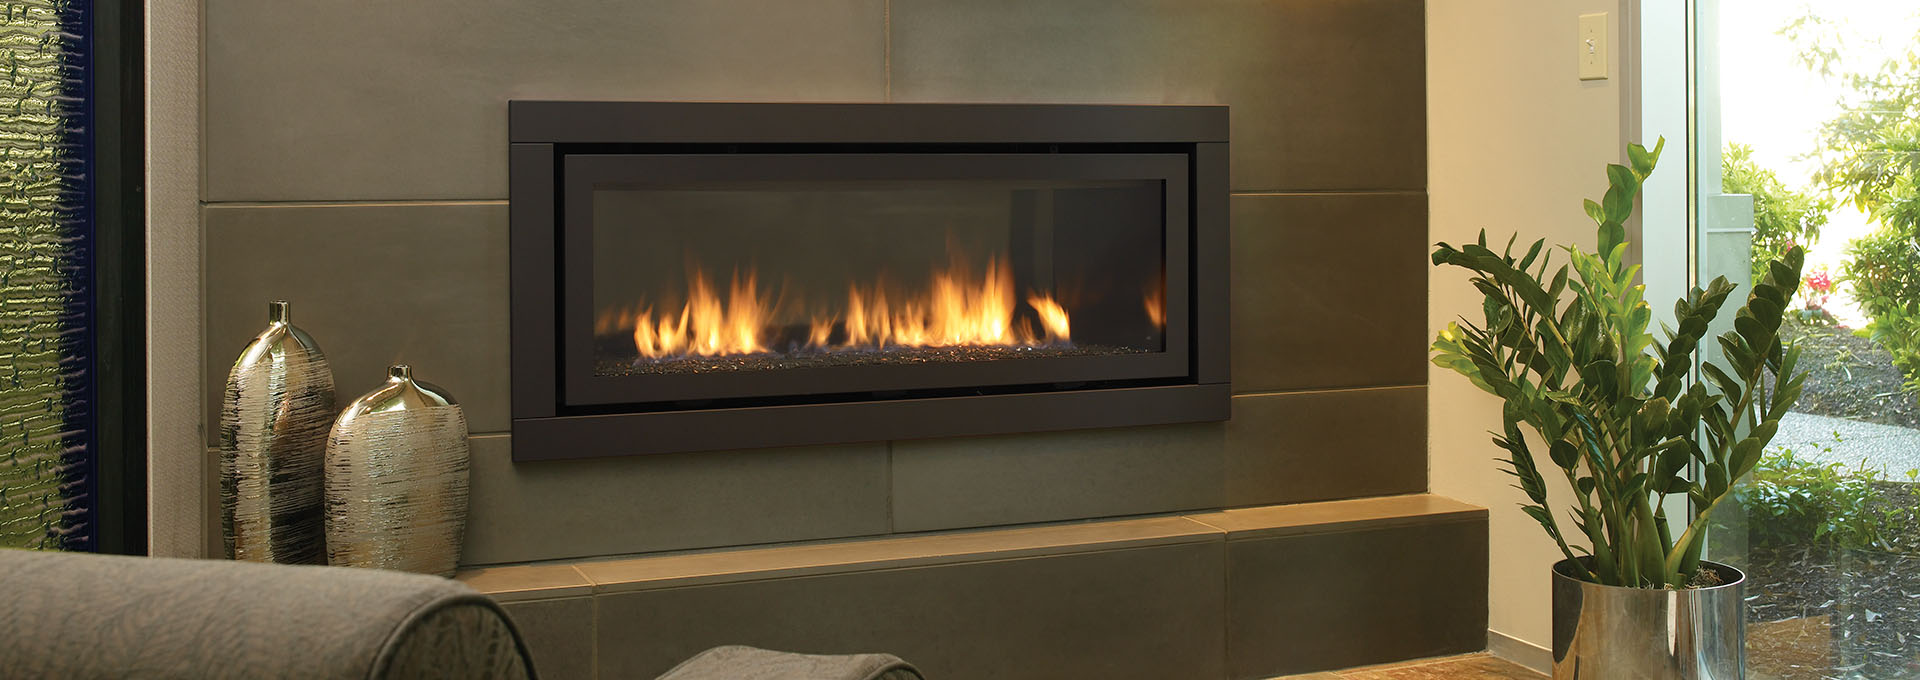 regency horizon hz54e gas fireplace contemporary u0026 modern gas